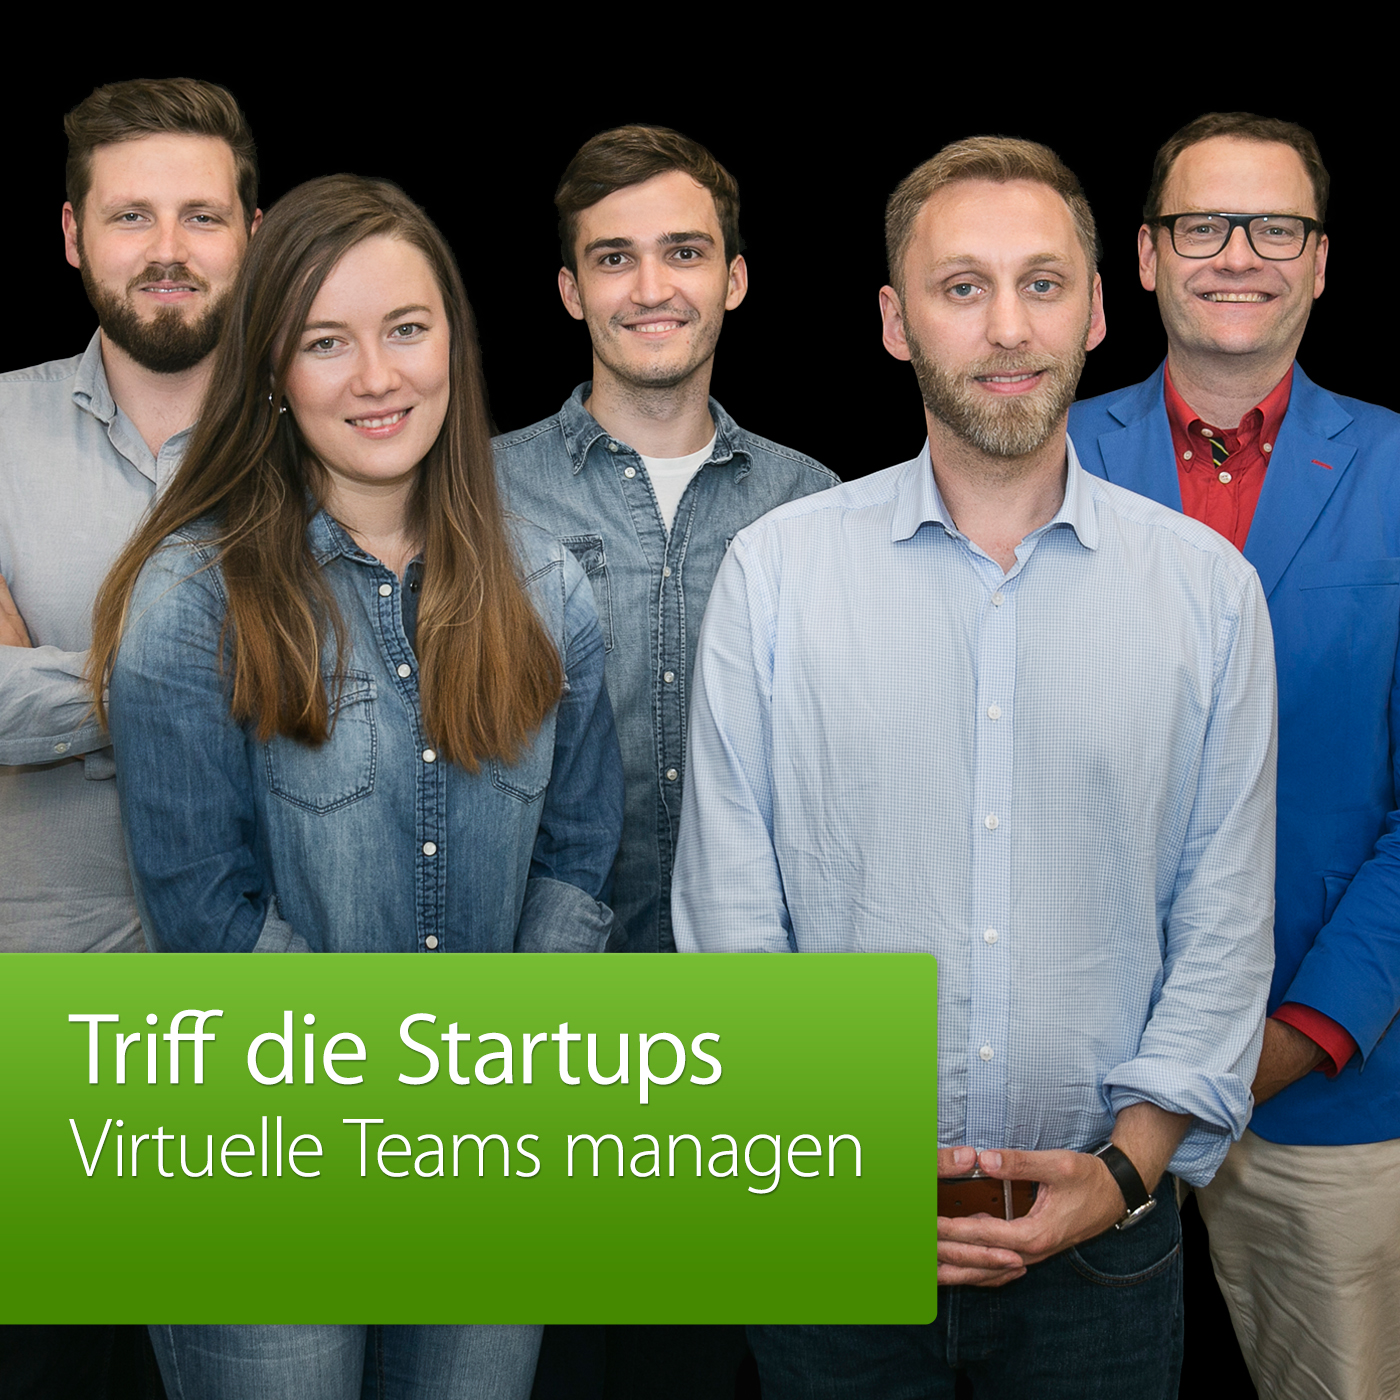 Virtuelle Teams managen: Triff die Startups